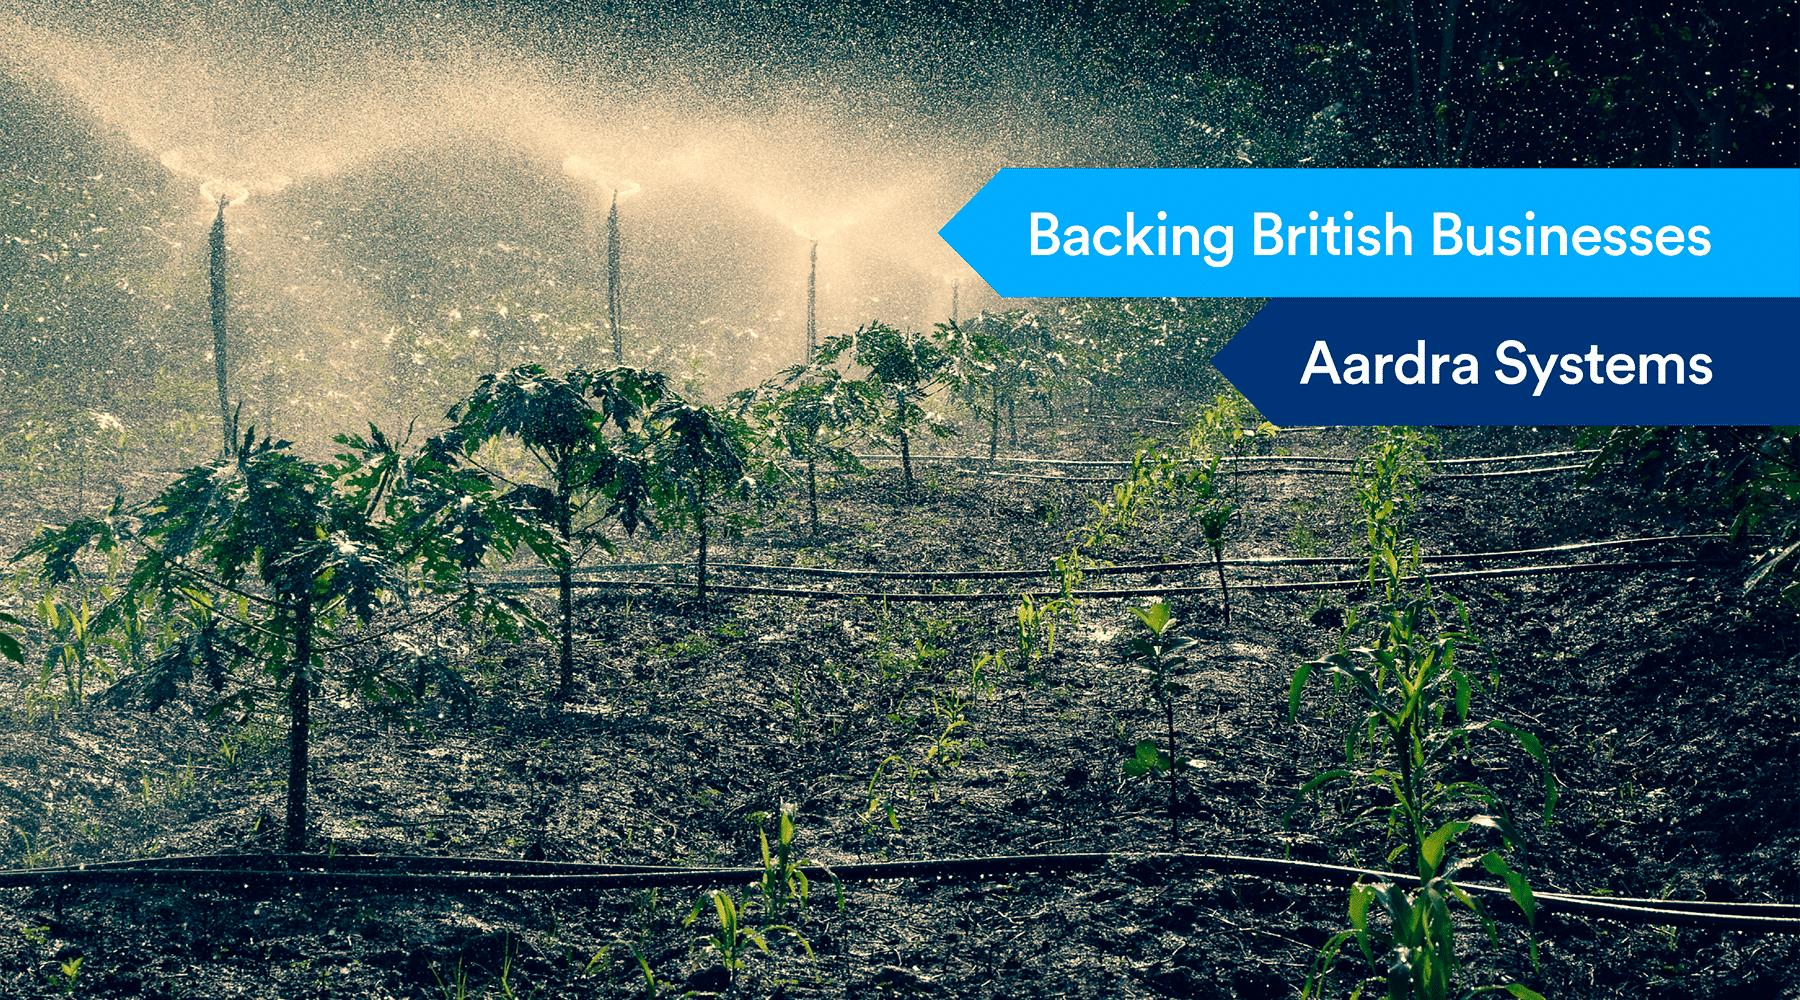 Aardra Systems - Backing British Businesses